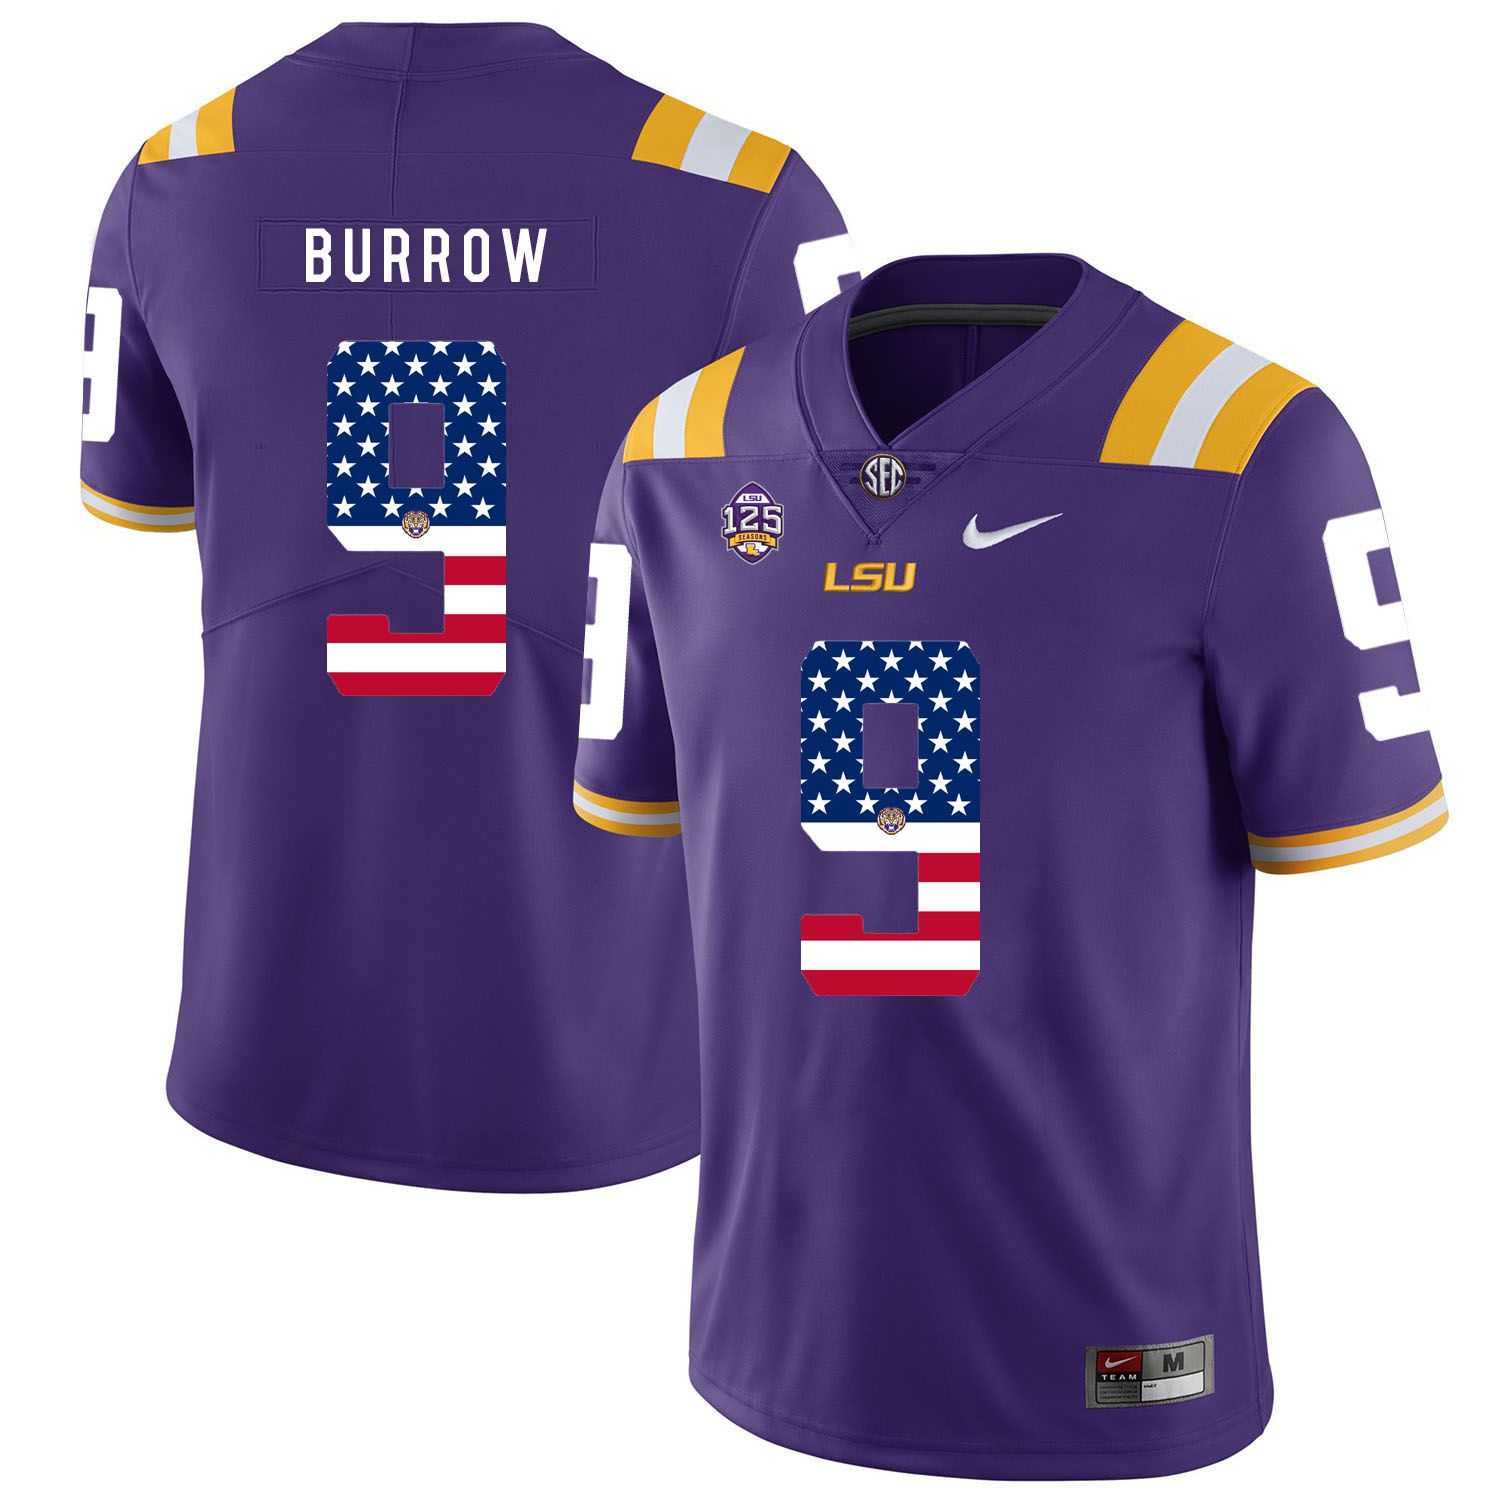 Men LSU Tigers 9 Burrow Purple Flag Customized NCAA Jerseys